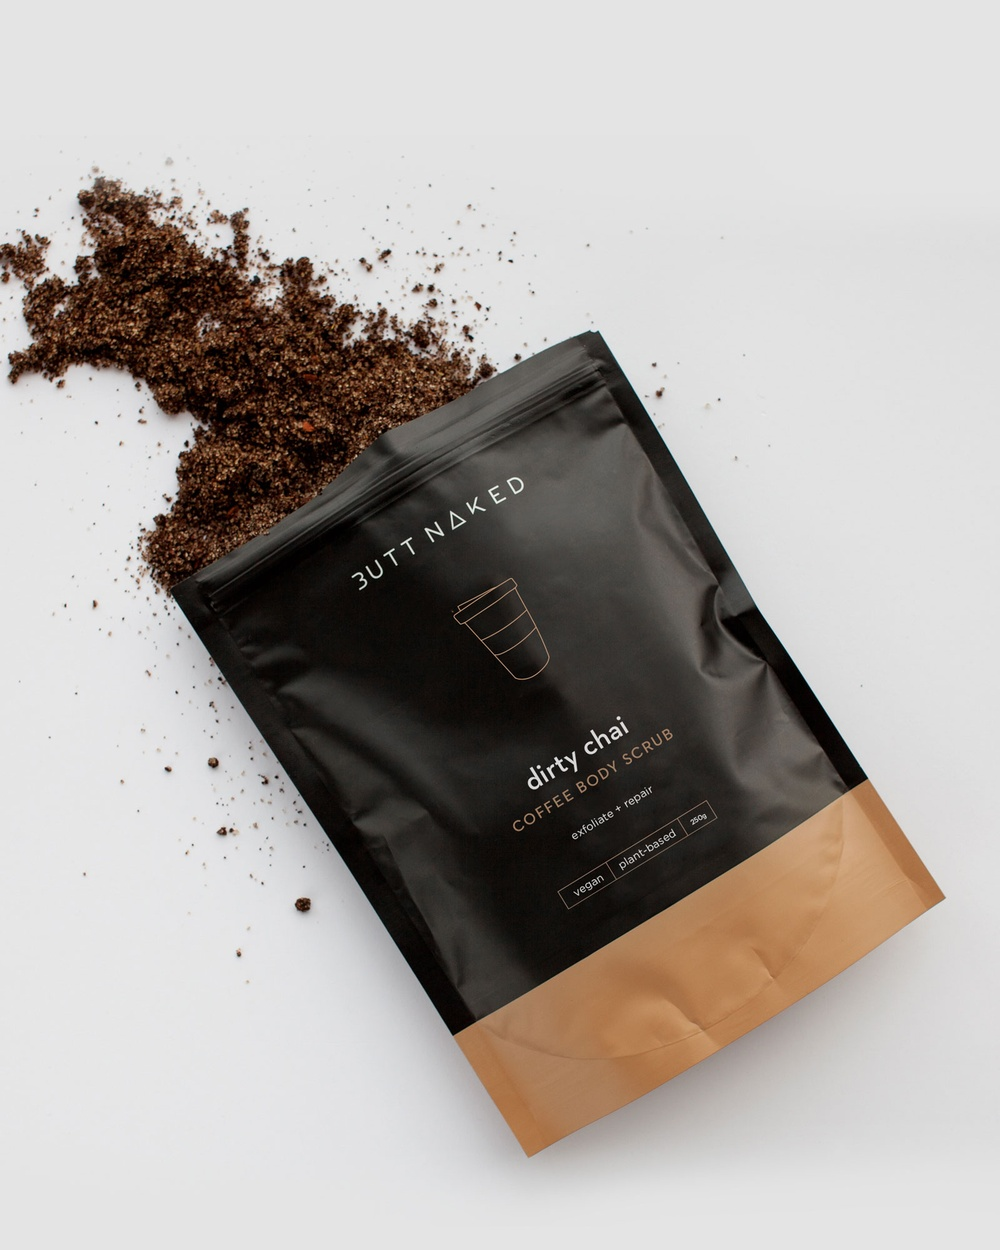 Dirty Chai Coffee Body Scrub - Beauty